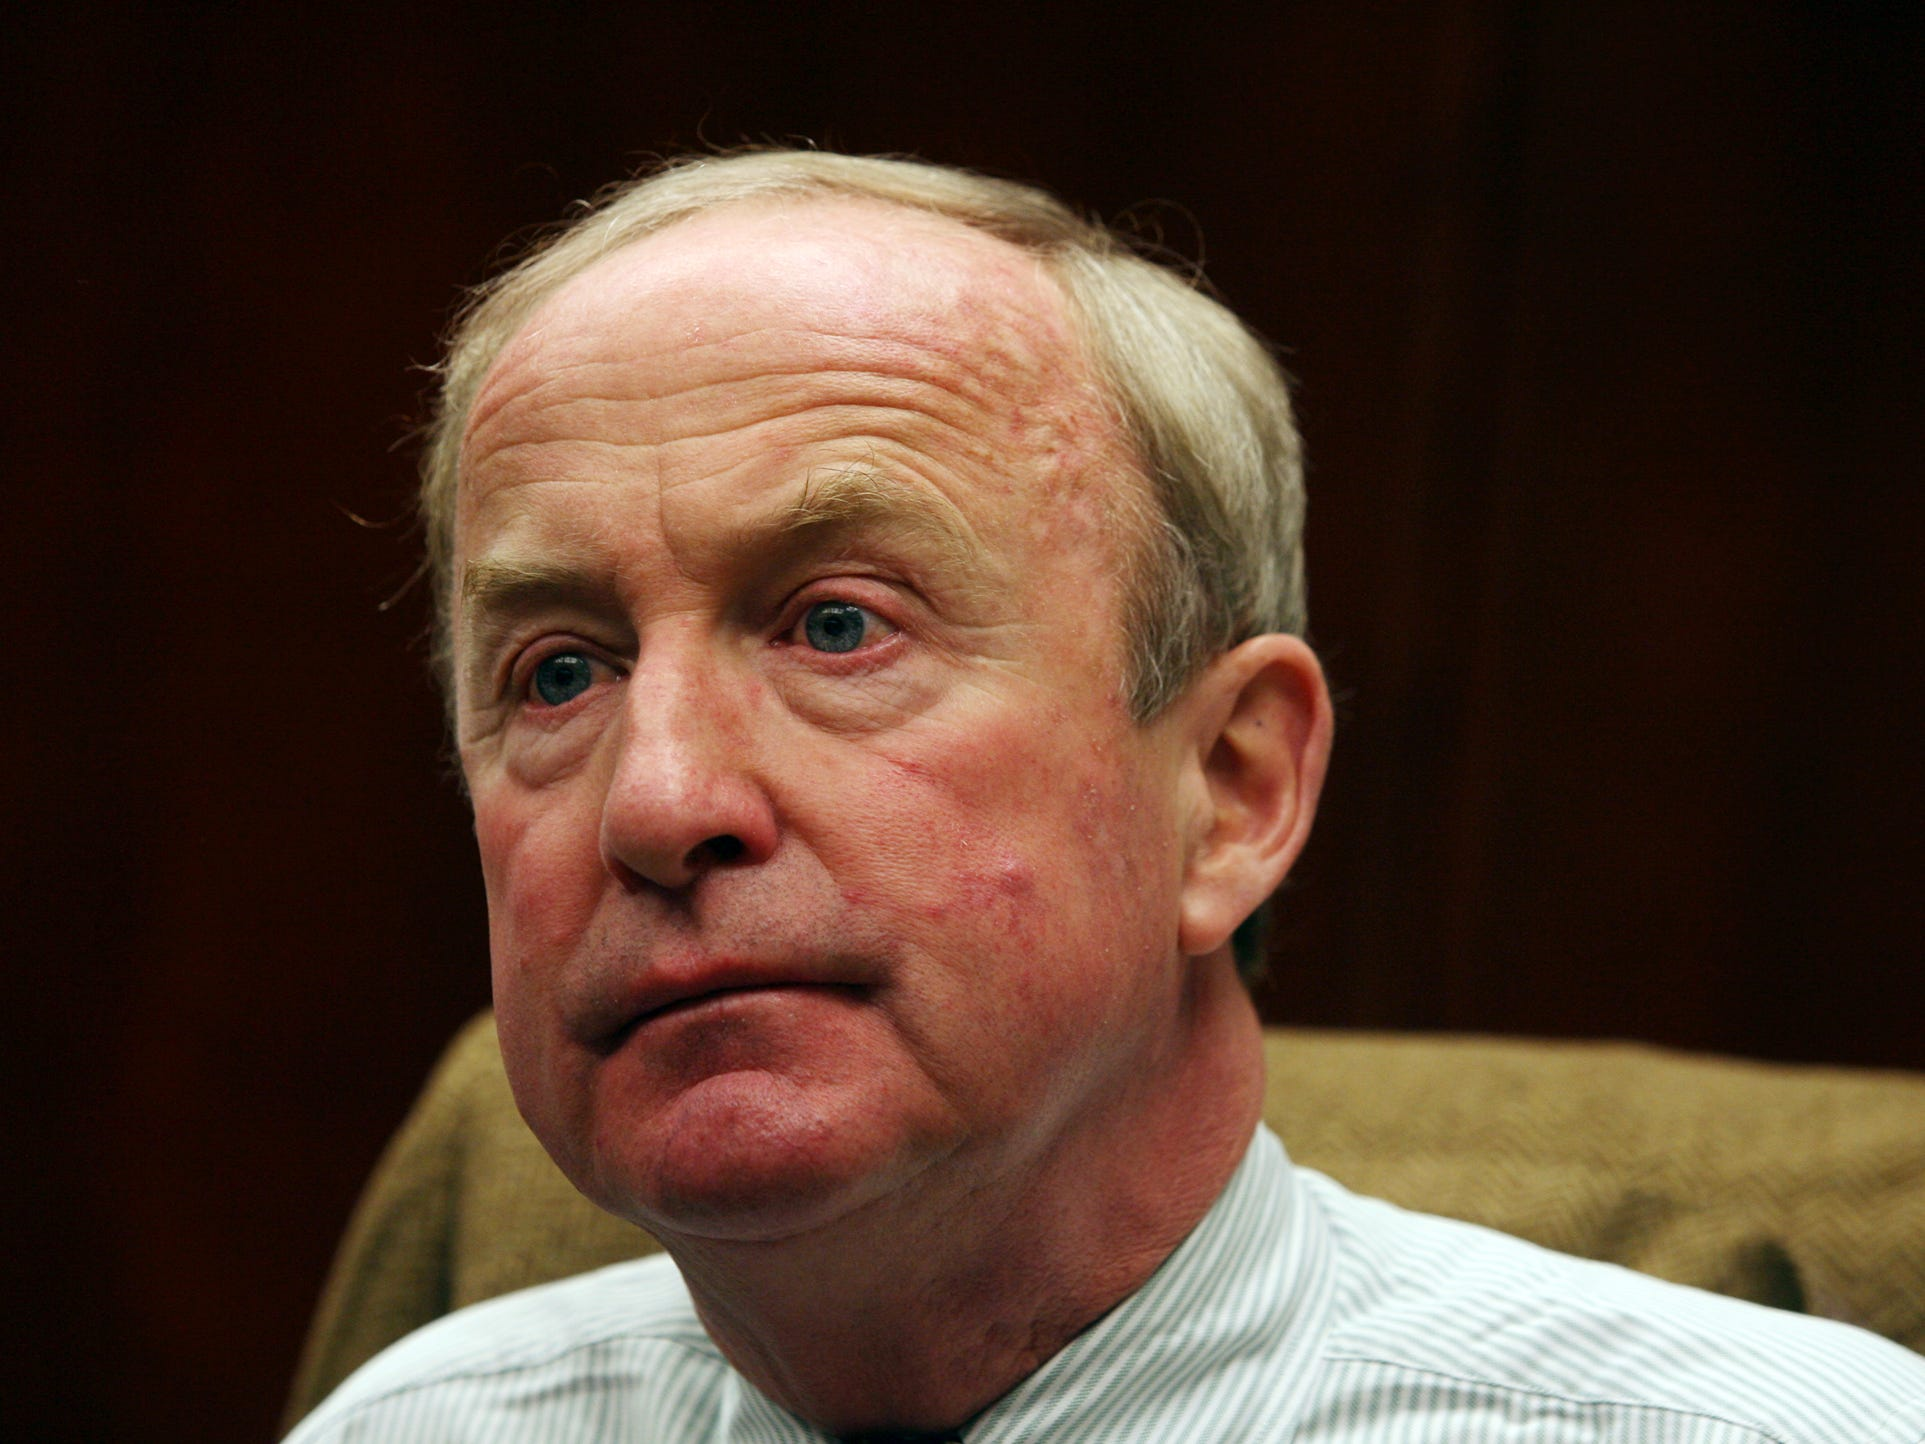 Parsippany, Nov 30, 2009 -- Congressman Rodney Frelinghuysen is back in New Jersey after visiting troops in Afghanistan as part of an official Congressional delegation.